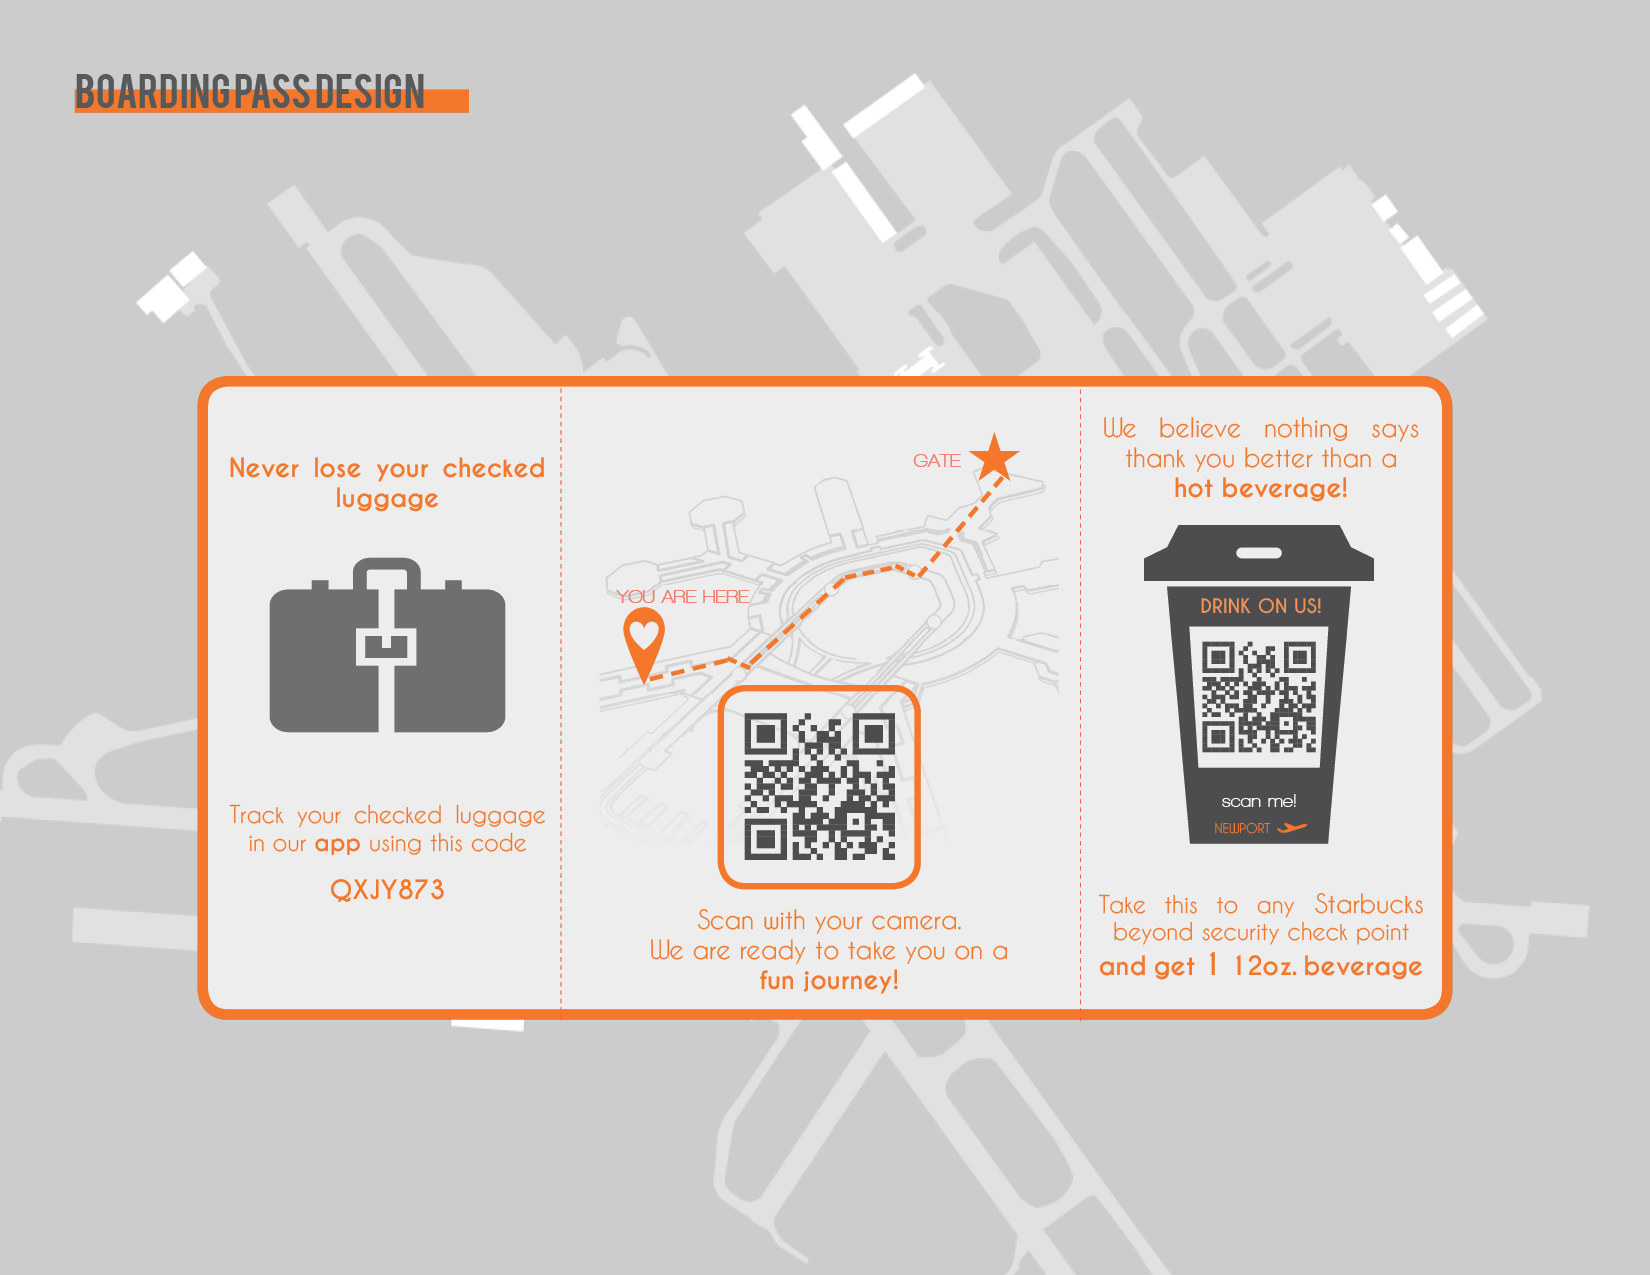 boarding pass design-map.png